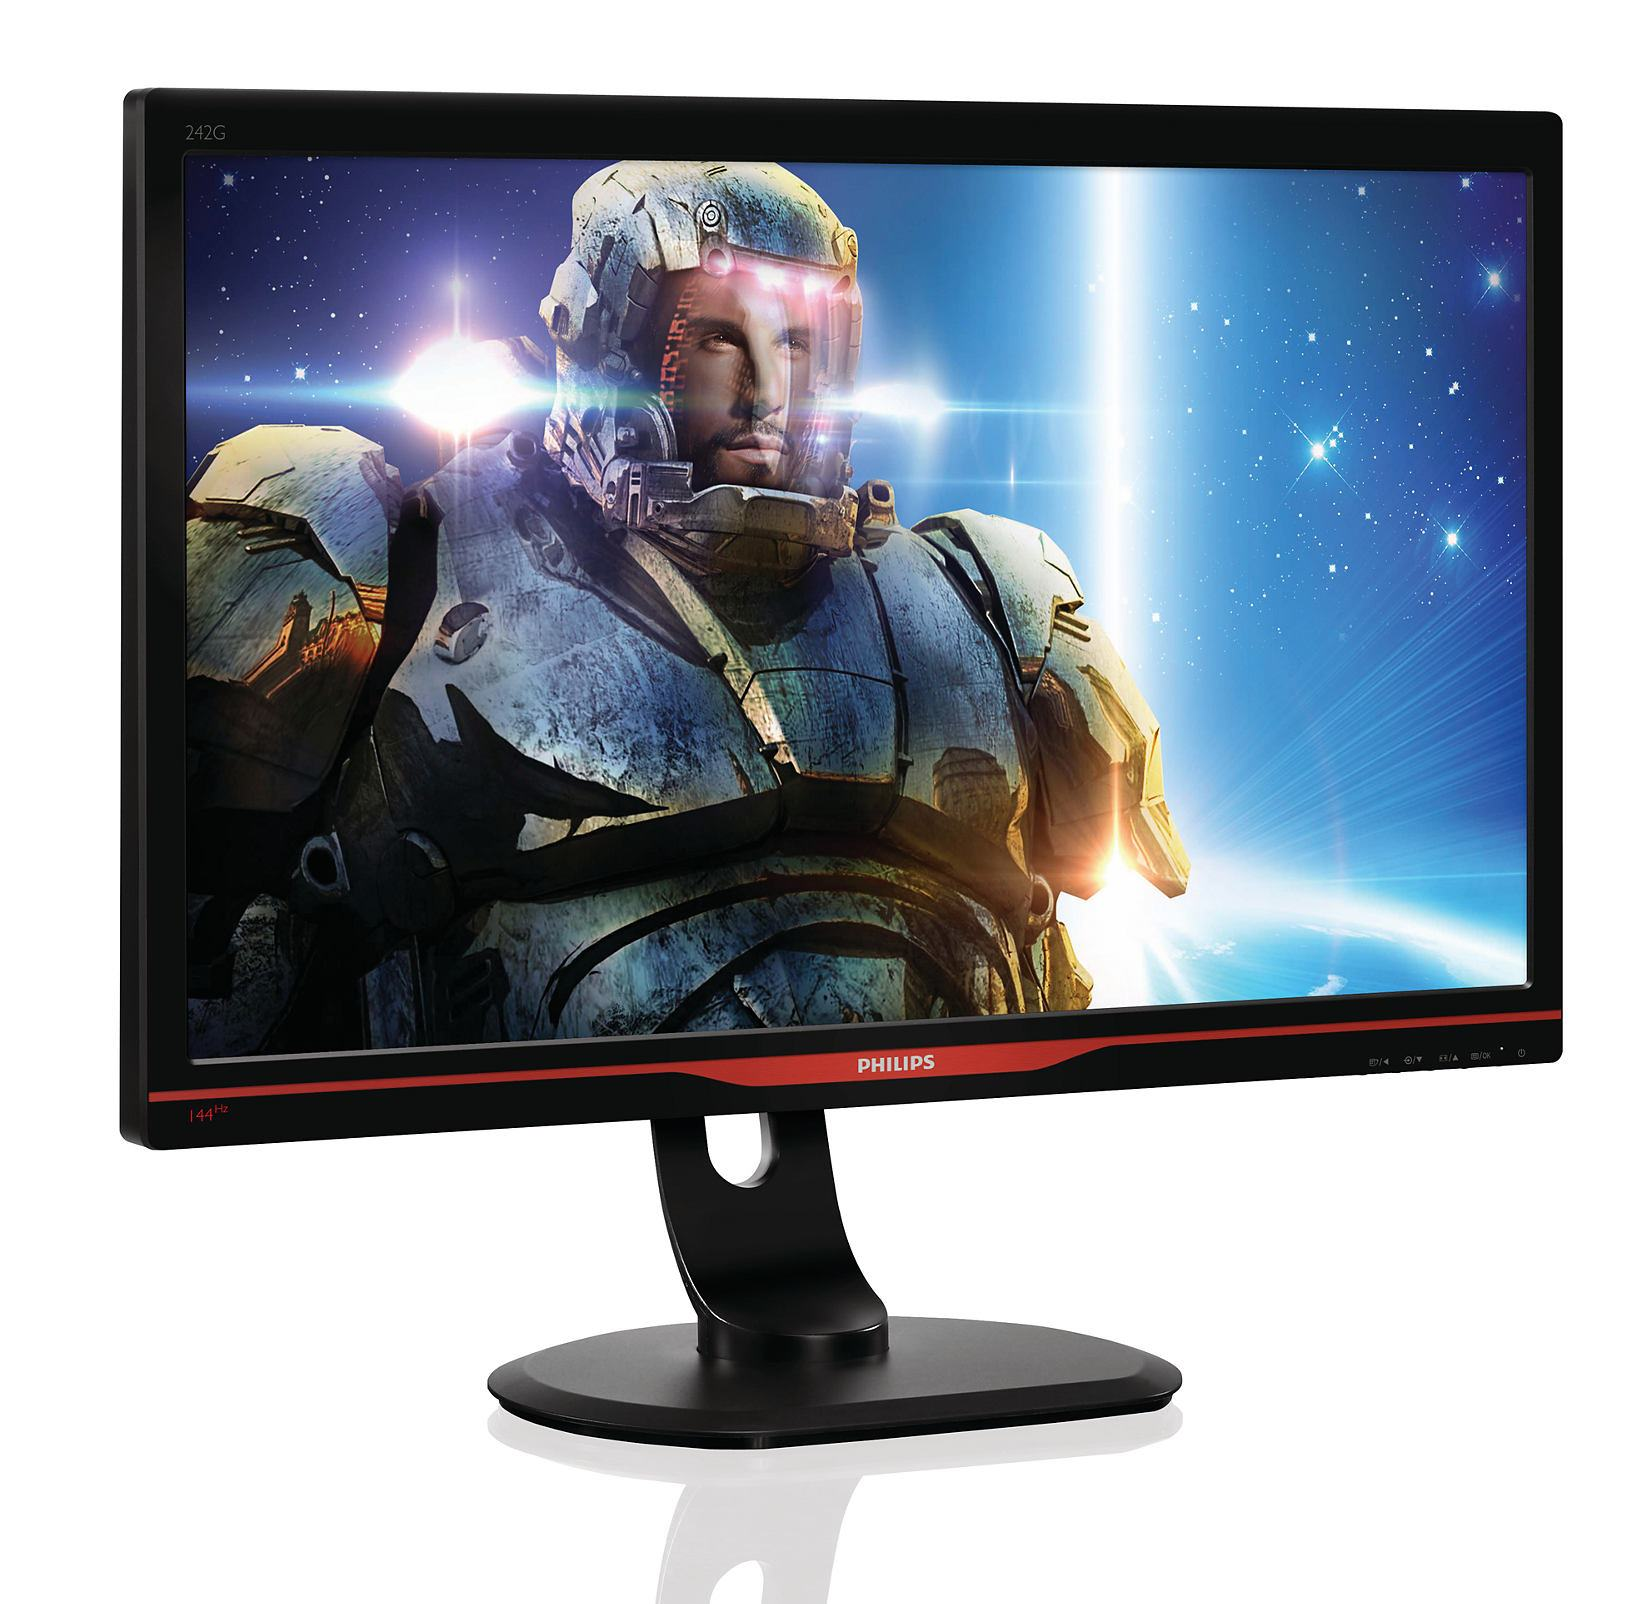 [IFA 2013] Philips 242G5DJEB da 144Hz per il gaming